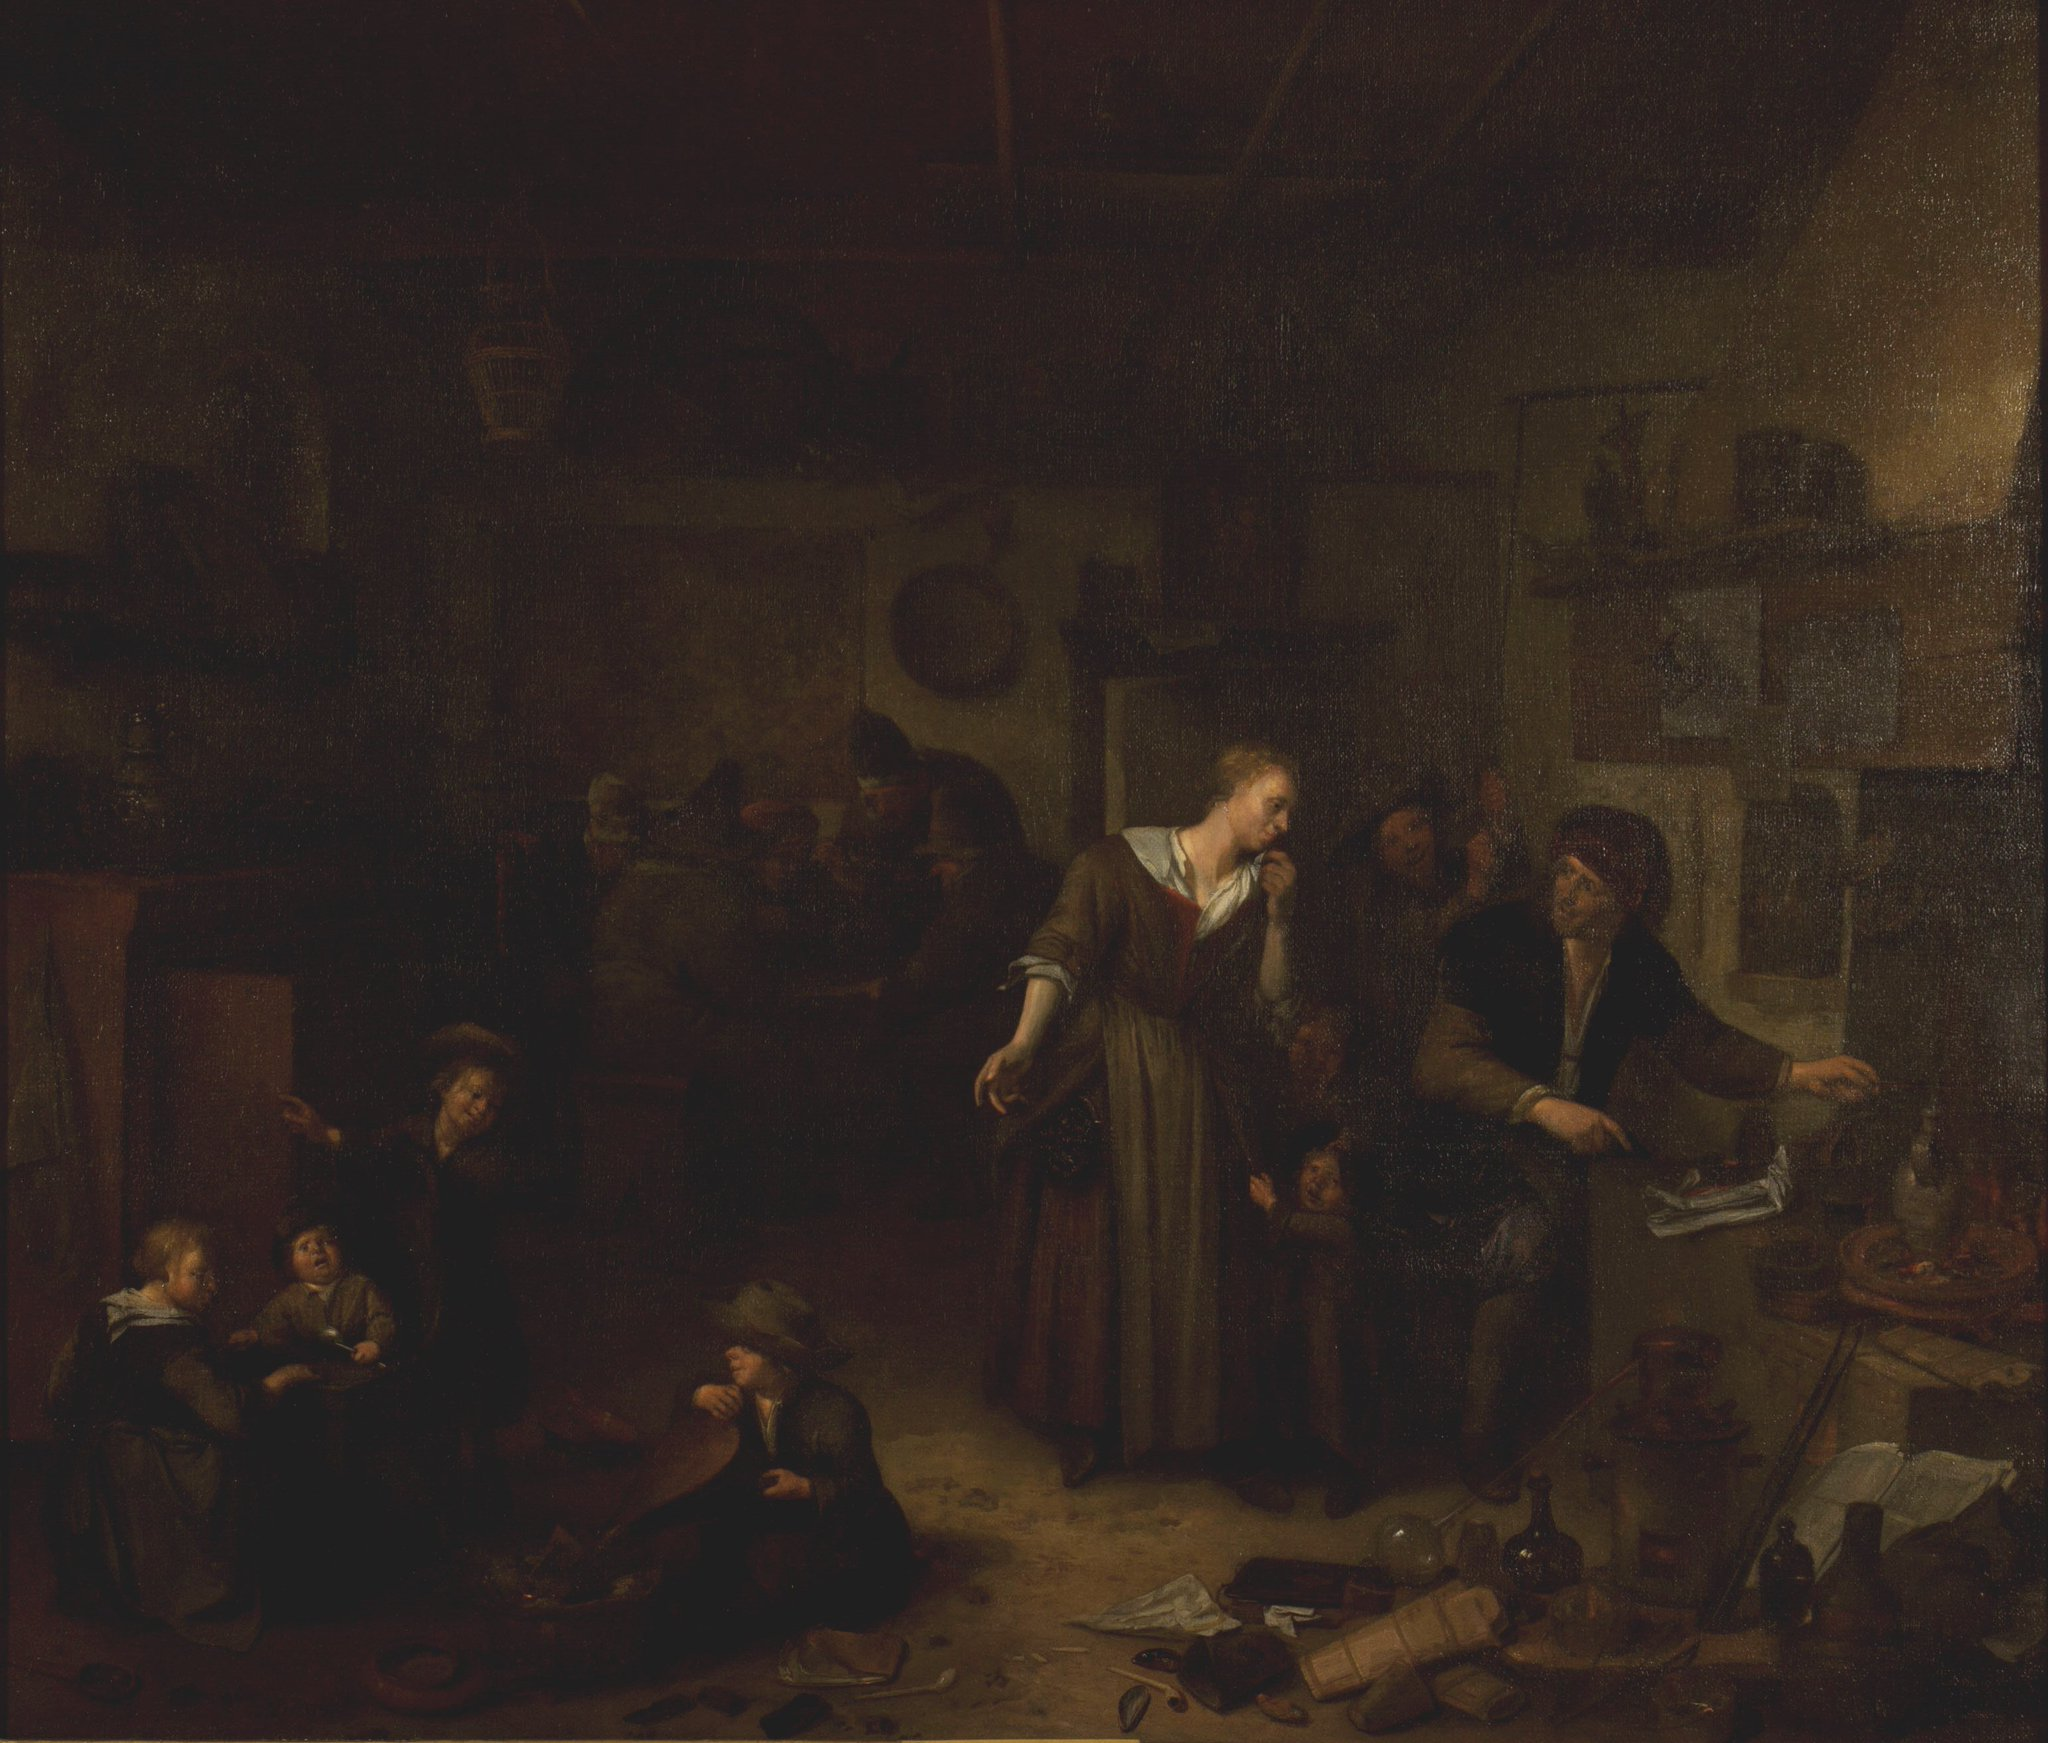 Women appear in tons of artworks that picture early modern science, in a variety of different roles... #MuseumMonday #WomensHistoryMonth https://t.co/R17UjxZS2s